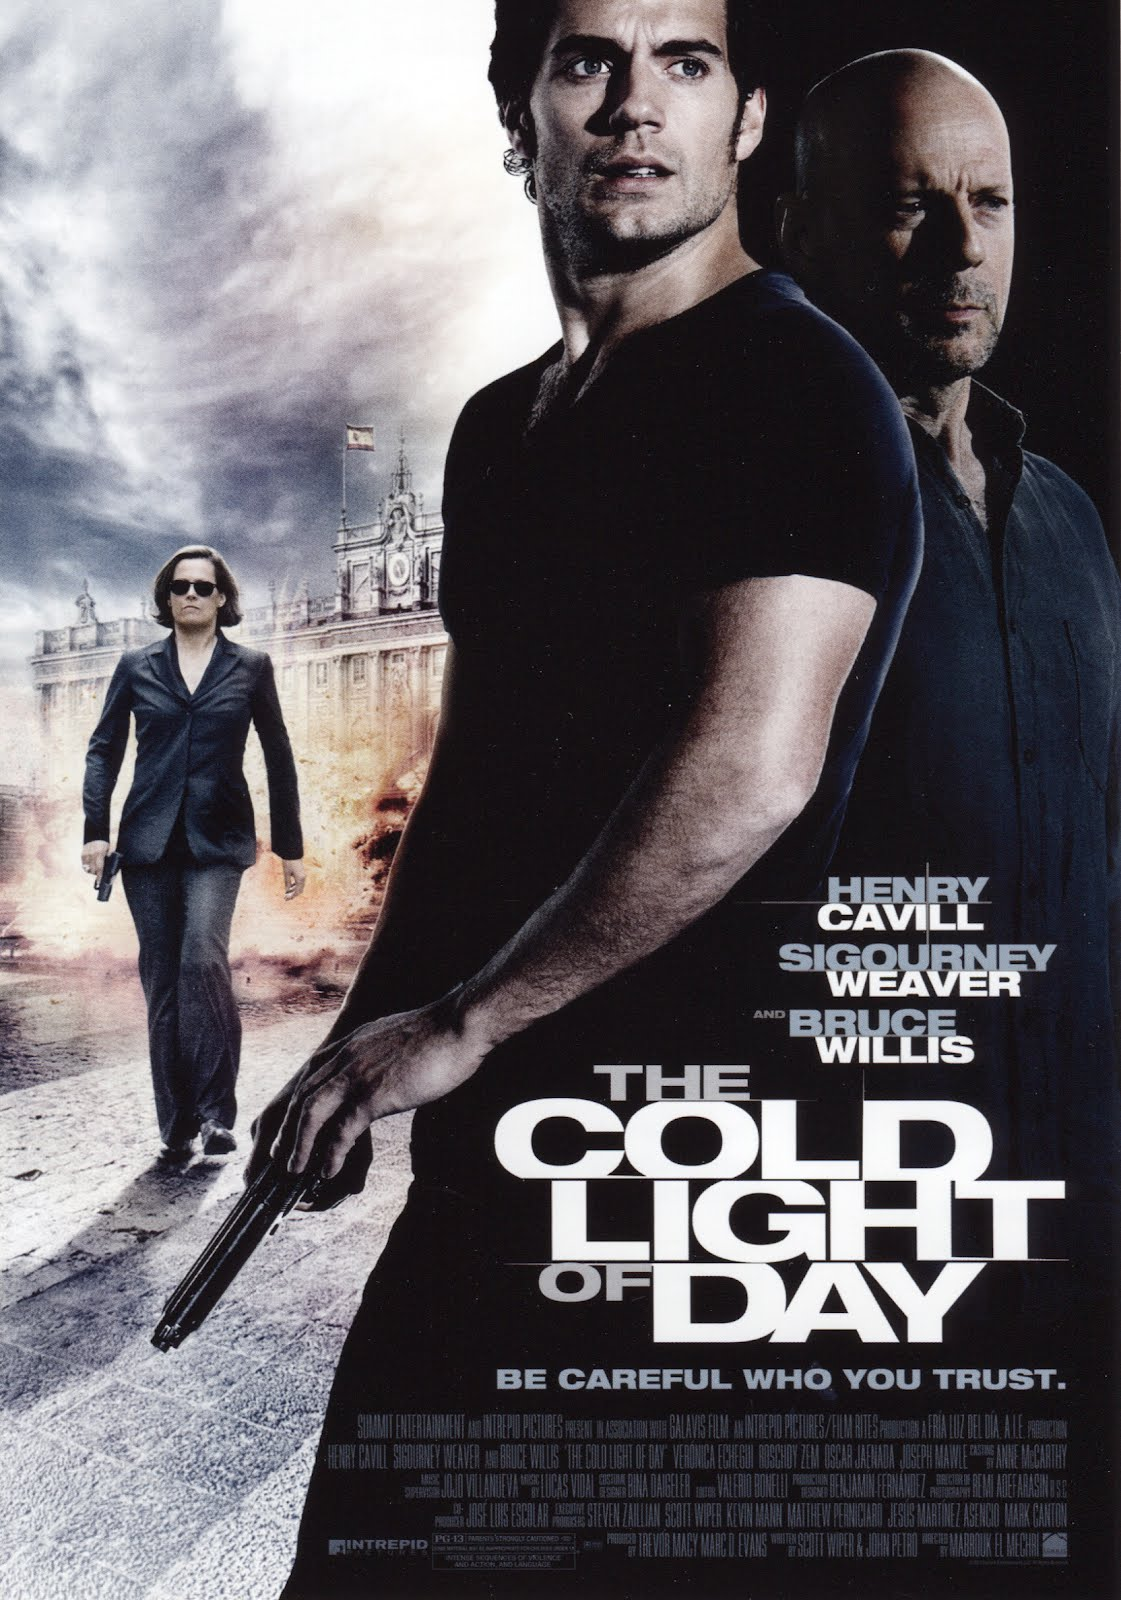 http://1.bp.blogspot.com/-zKSKV0lry5E/Ty0Ur6jqi1I/AAAAAAAAAB0/TulUc0Ptn4Y/s1600/the-cold-light-of-day-movie-poster.jpg